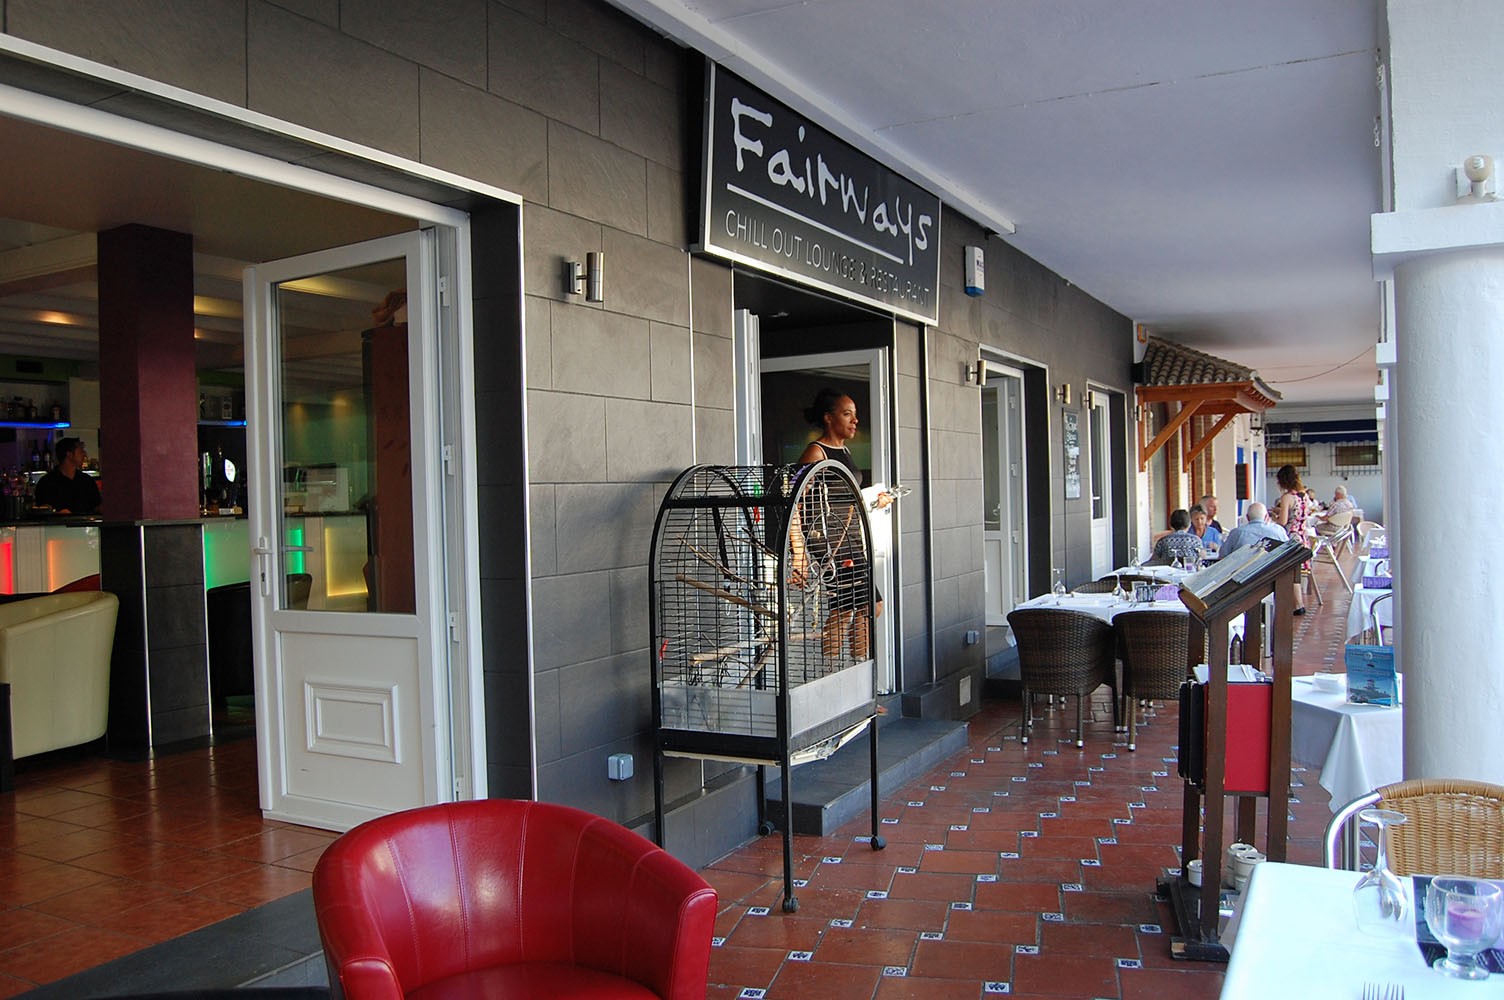 Fairways Restaurant Villamartin Plaza